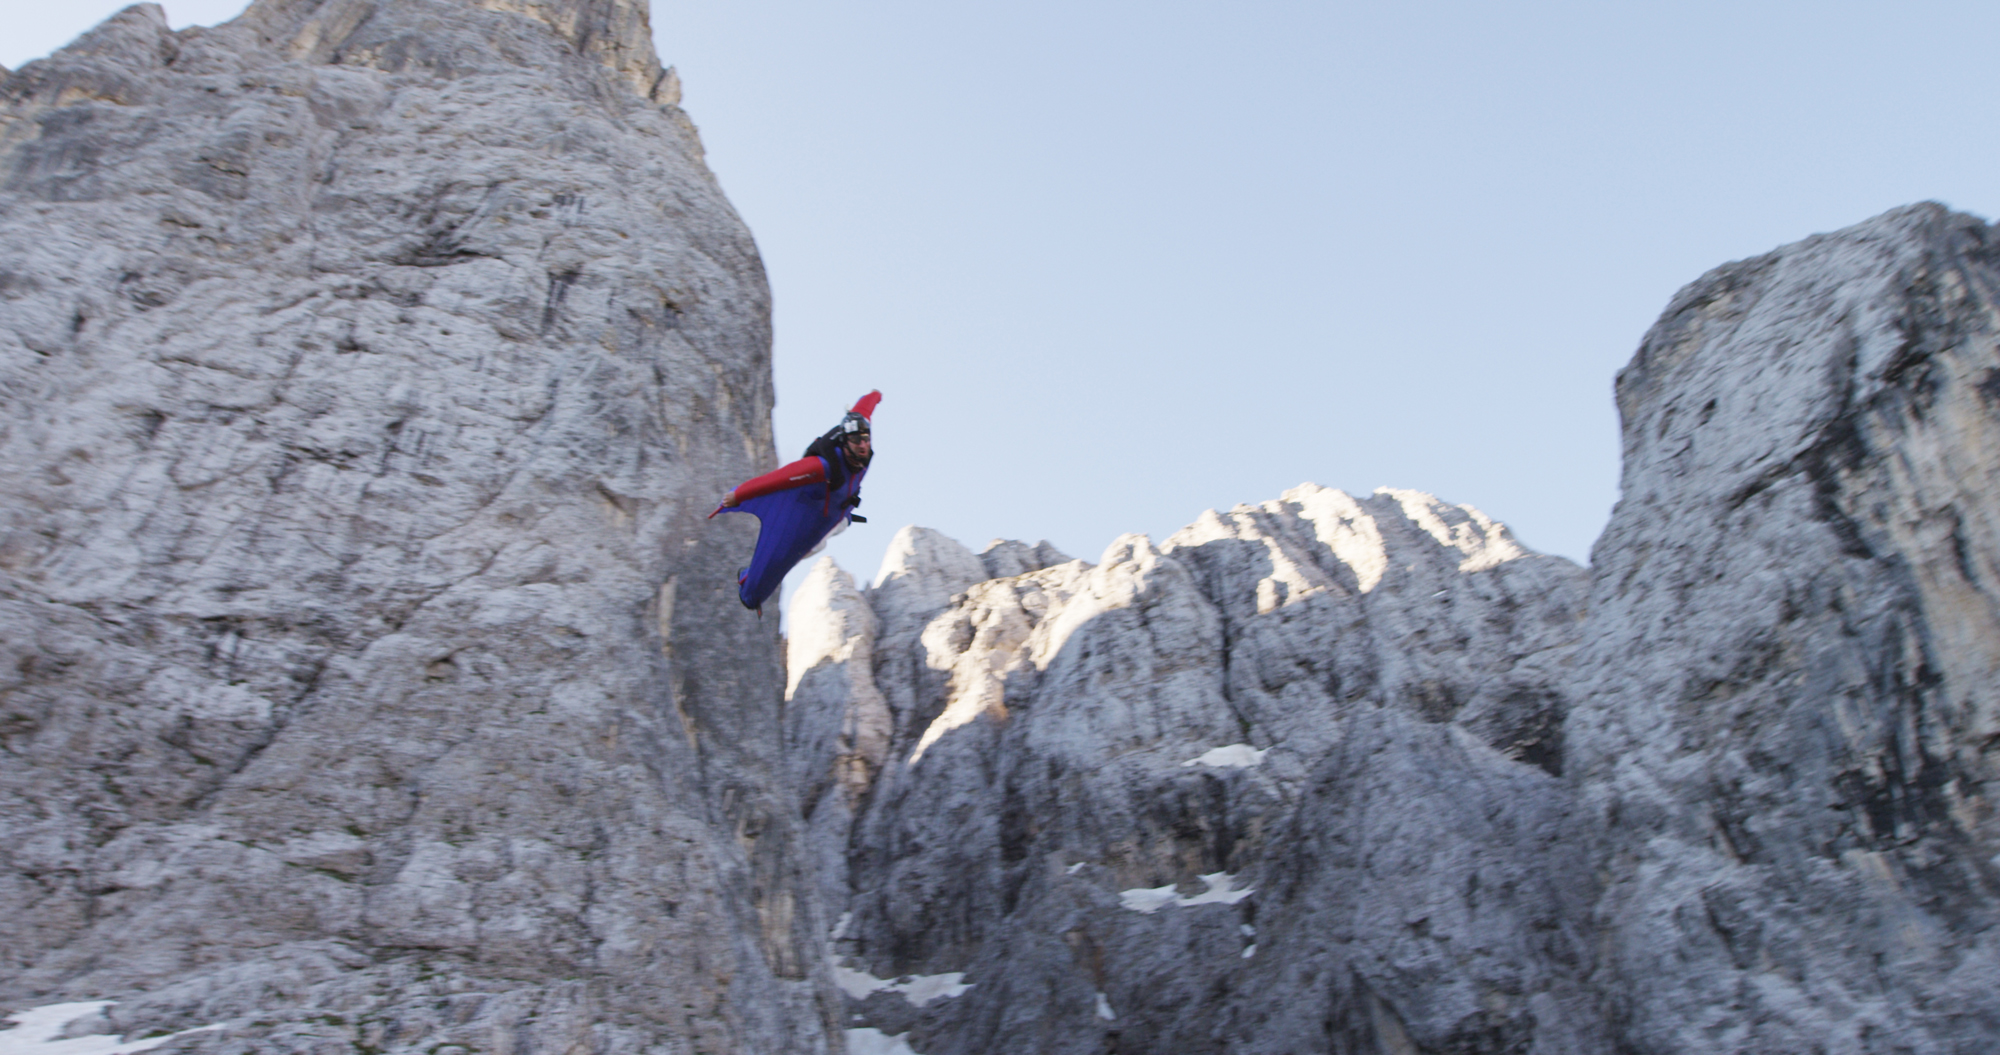 NDG-Wingsuit Dolomites-Addicted to Life-NDG2014-4-copyright Perfect Moment Entertainment